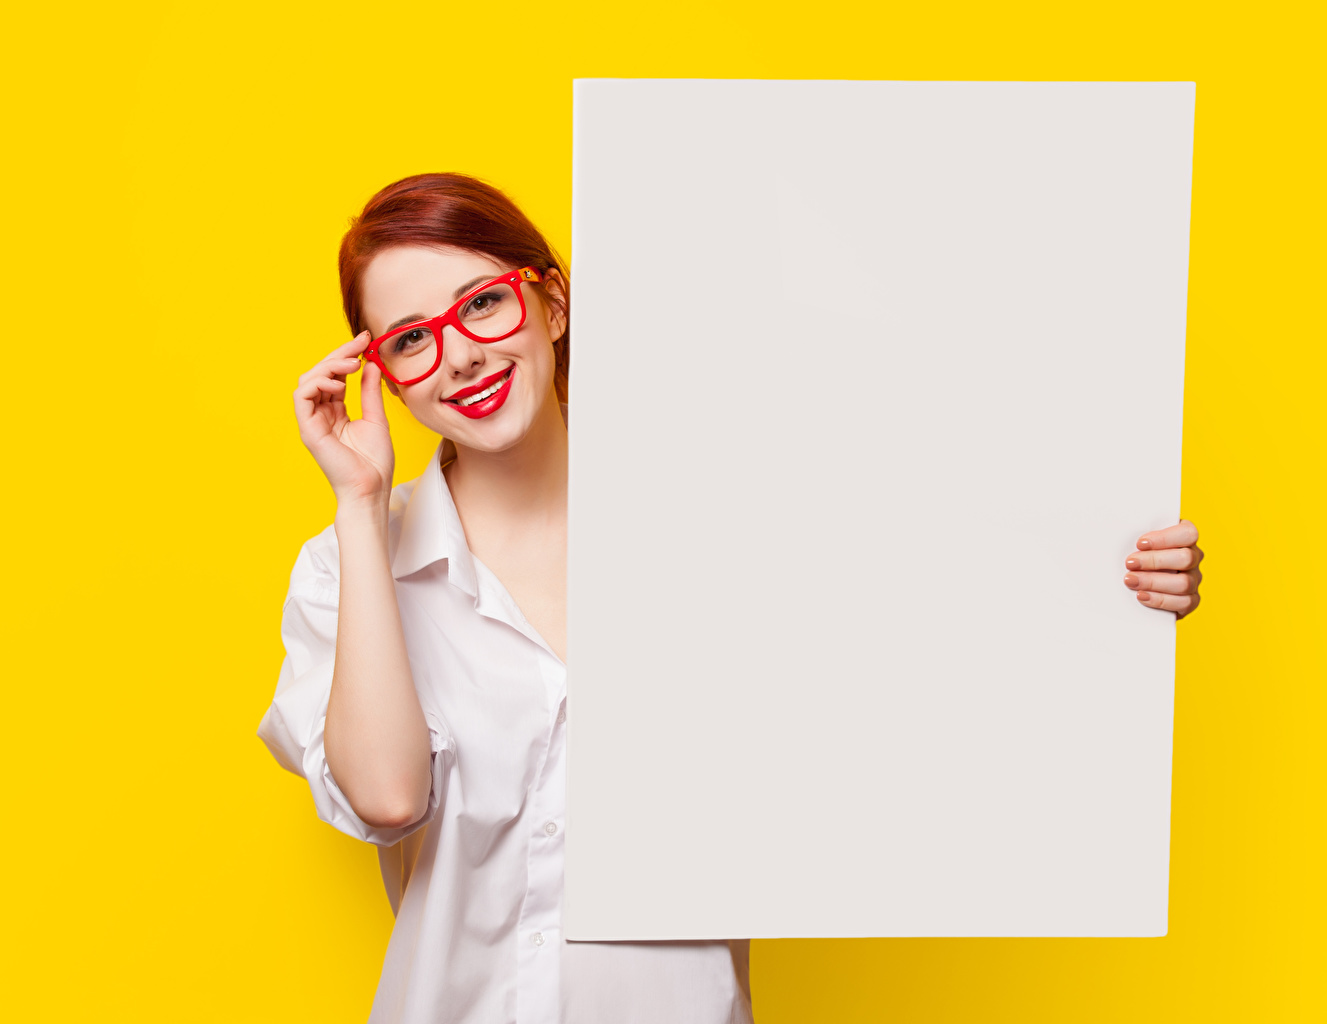 Desktop Wallpapers Redhead girl Sheet of paper Girls Hands eyeglasses Template greeting card Glance Red lips Colored background female young woman Glasses Staring